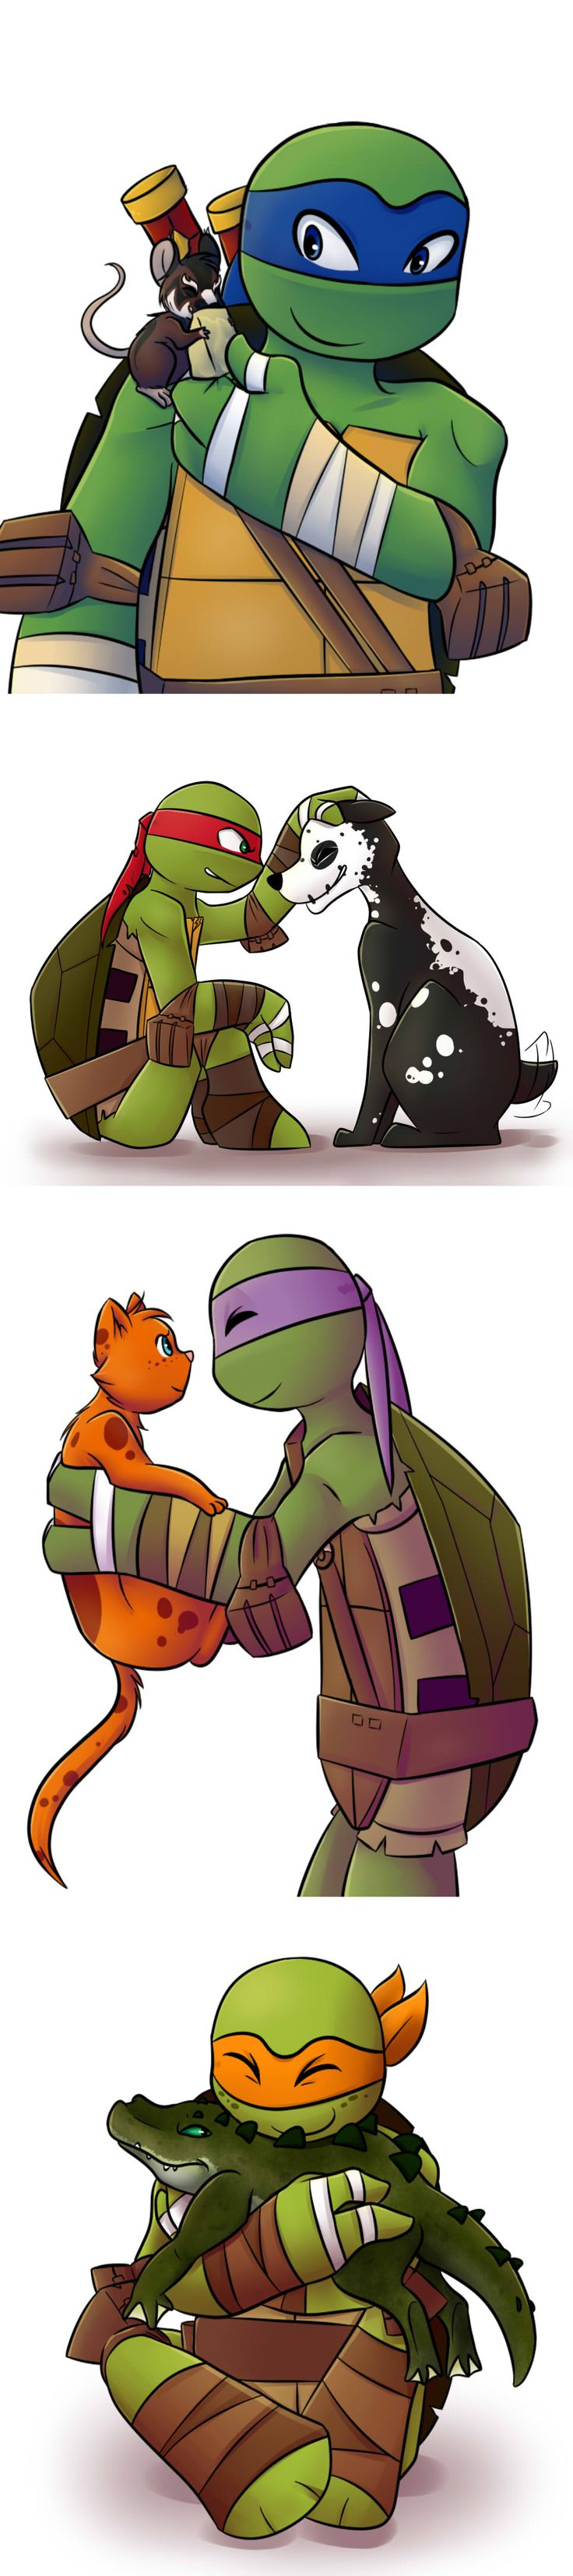 Why doesn't Raph has spike????????? It was still his pet. And a rat for Leo?